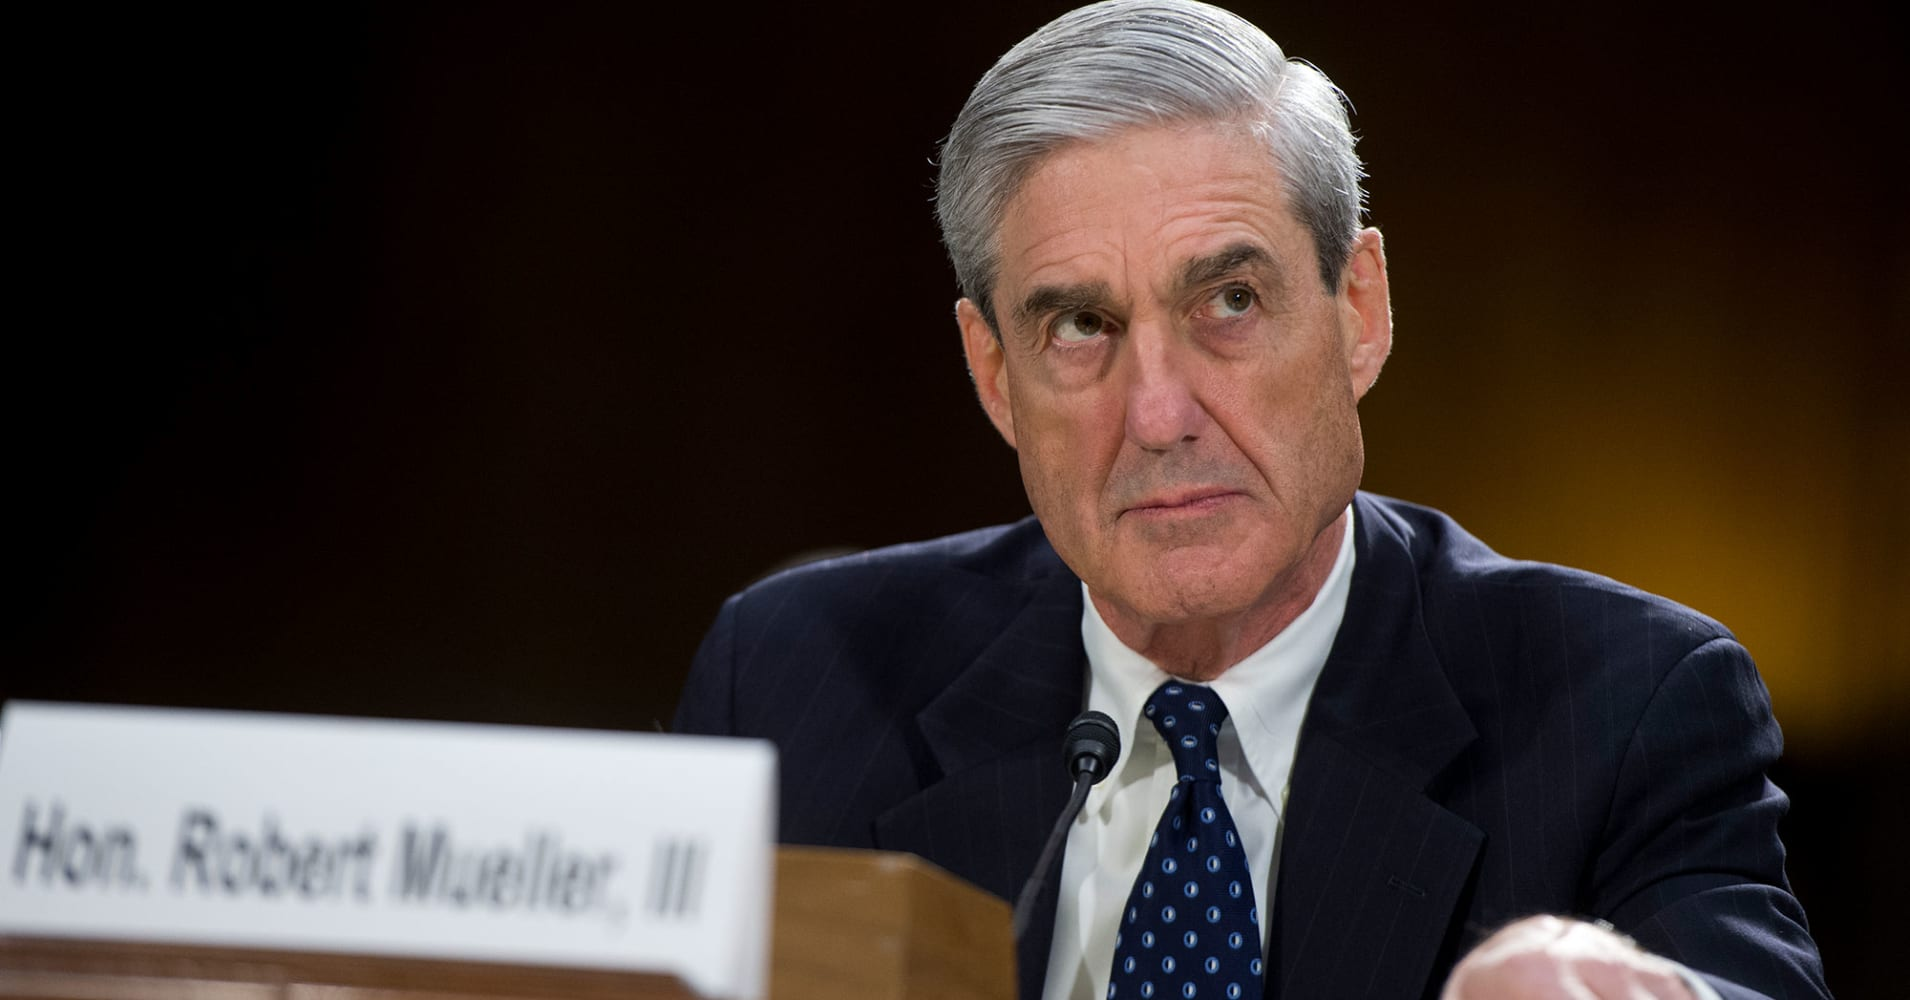 Russia's hack into the US election was surprisingly inexpensive, Mueller report shows